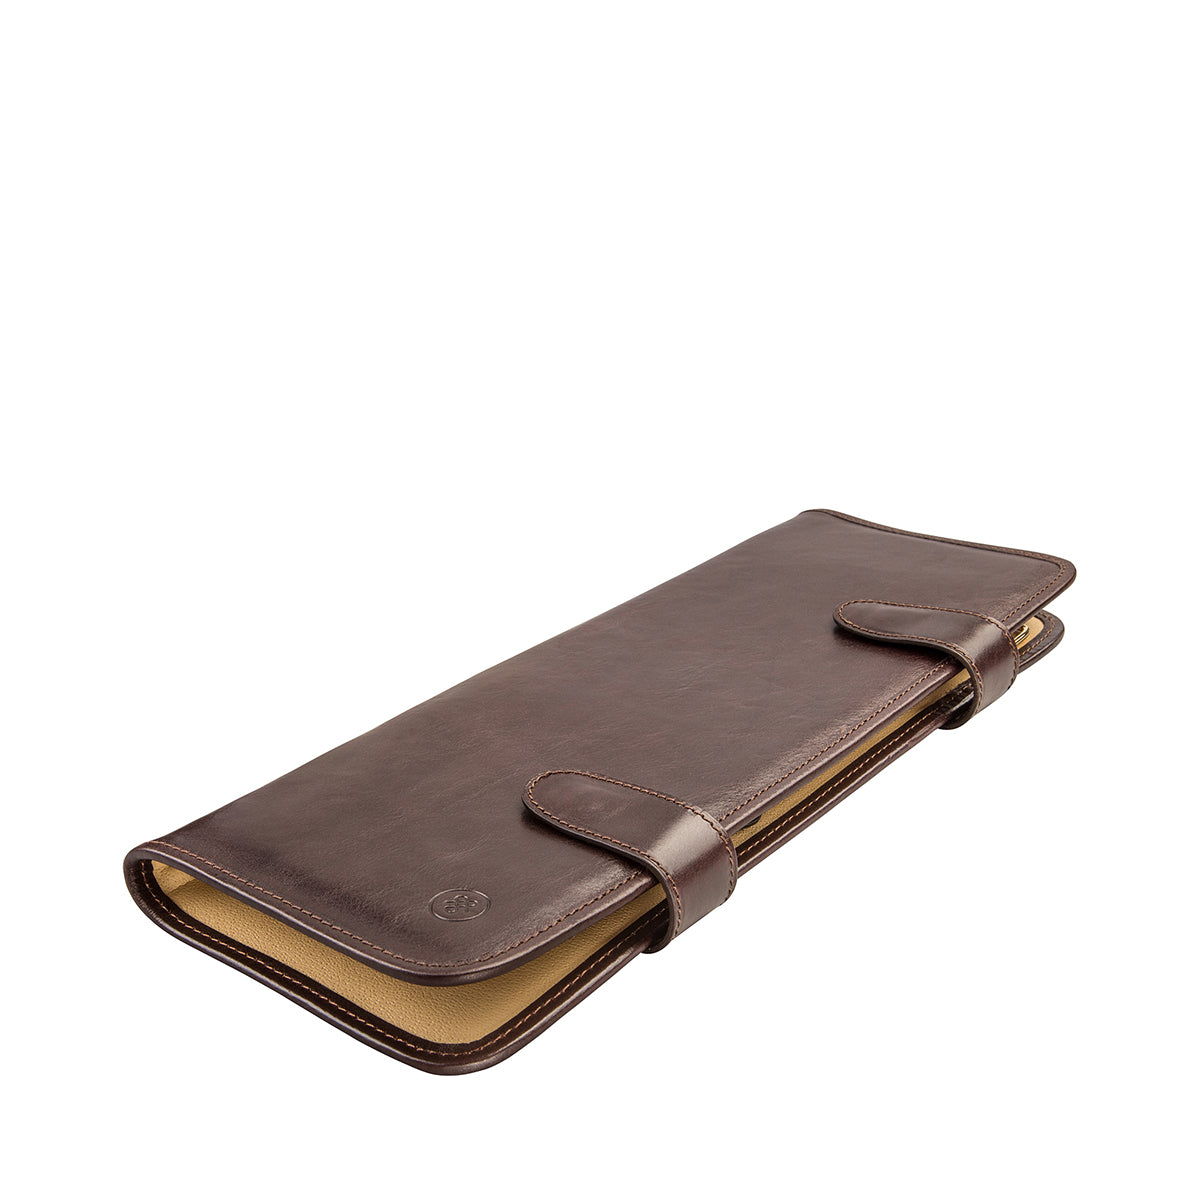 Image 2 of the 'Tivoli' Brown Veg-Tanned Leather Tie Cover